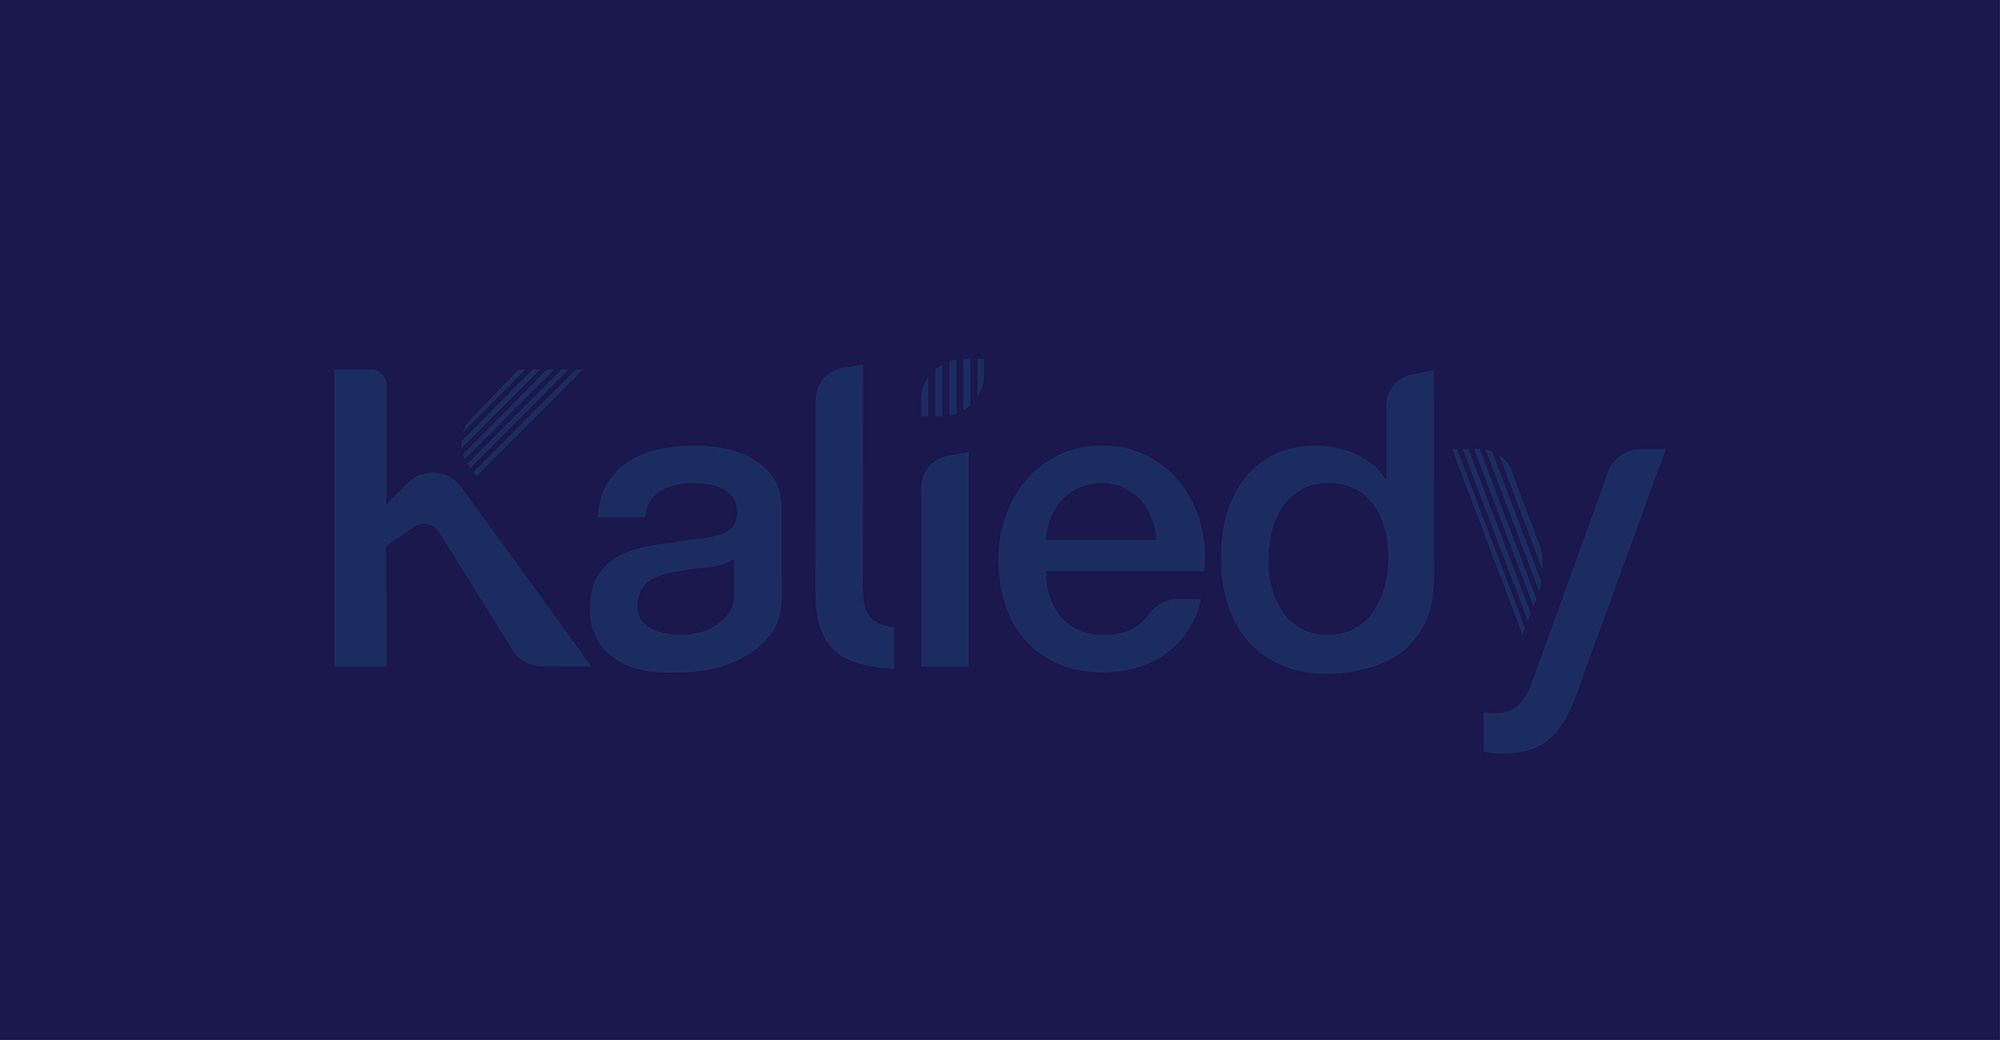 Cover image: Kaliedy Brand and Packaging